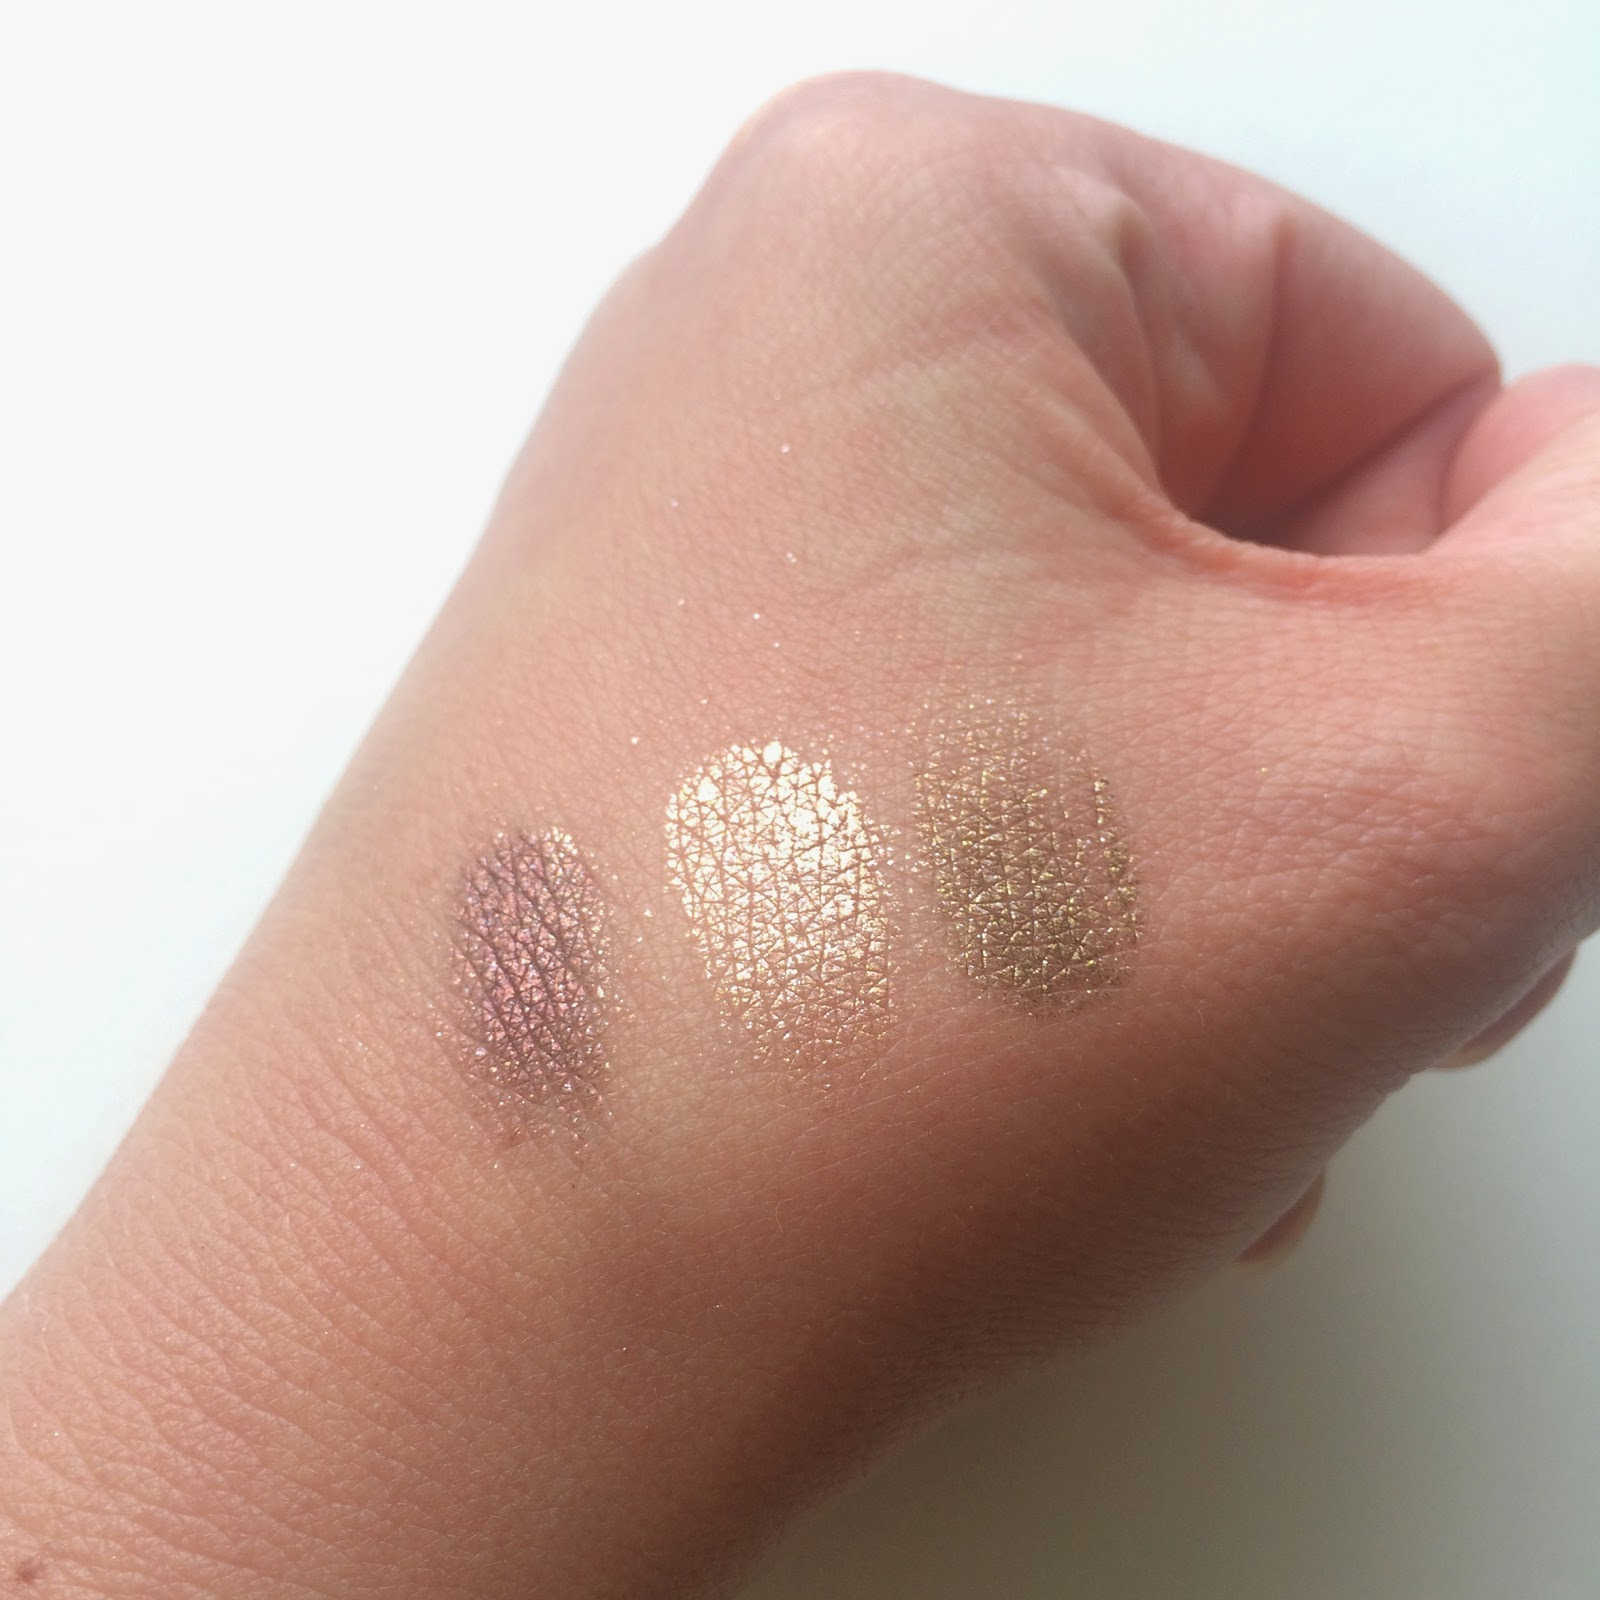 Australis Metallix Eye Shadow swatches